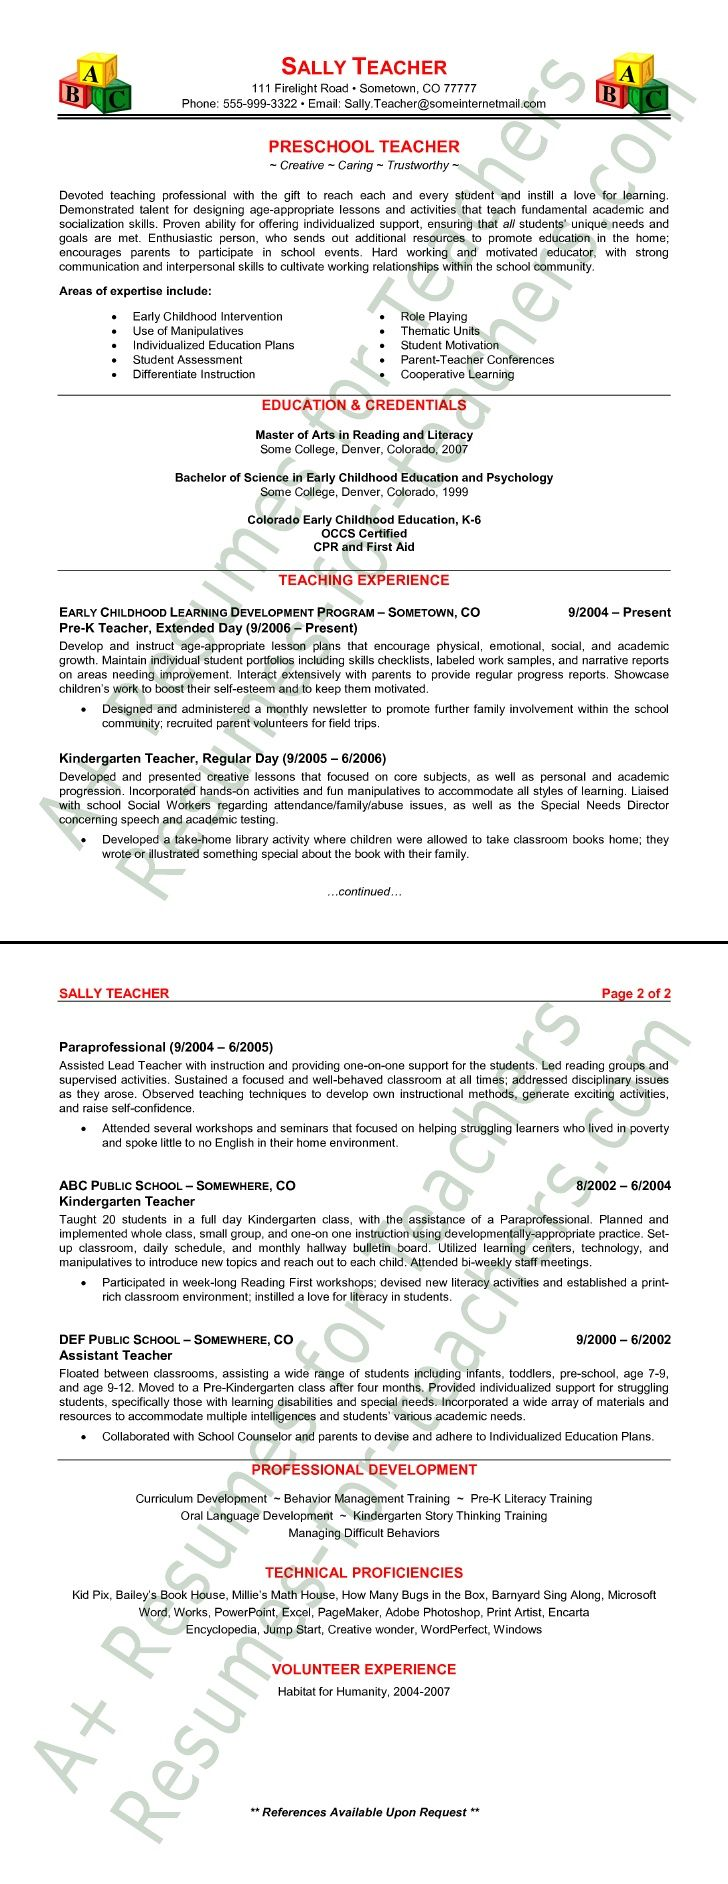 Sample Teaching Resumes For Preschool | Preschool Teacher Resume Sample  Resume Samples For Teachers